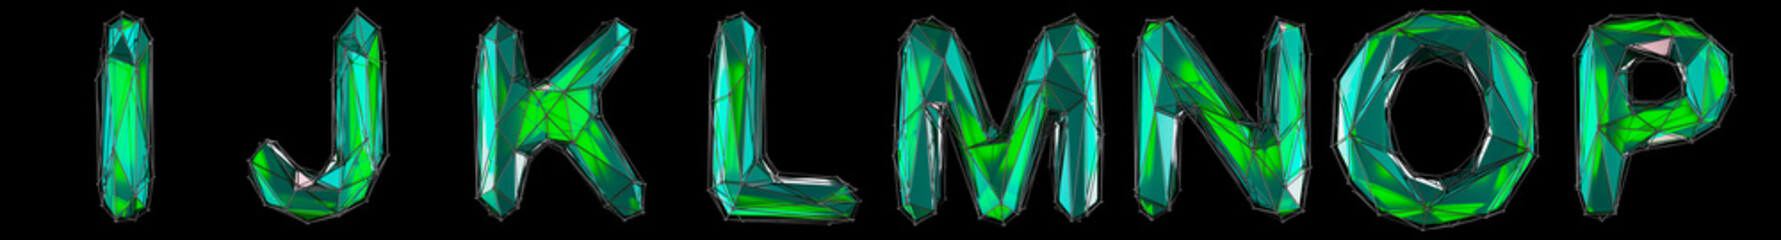 Obraz Realistic 3D set of letters I, J, K, L, M, N, O, P made of low poly style. Collection symbols of low poly style green color glass isolated on black background 3d - fototapety do salonu